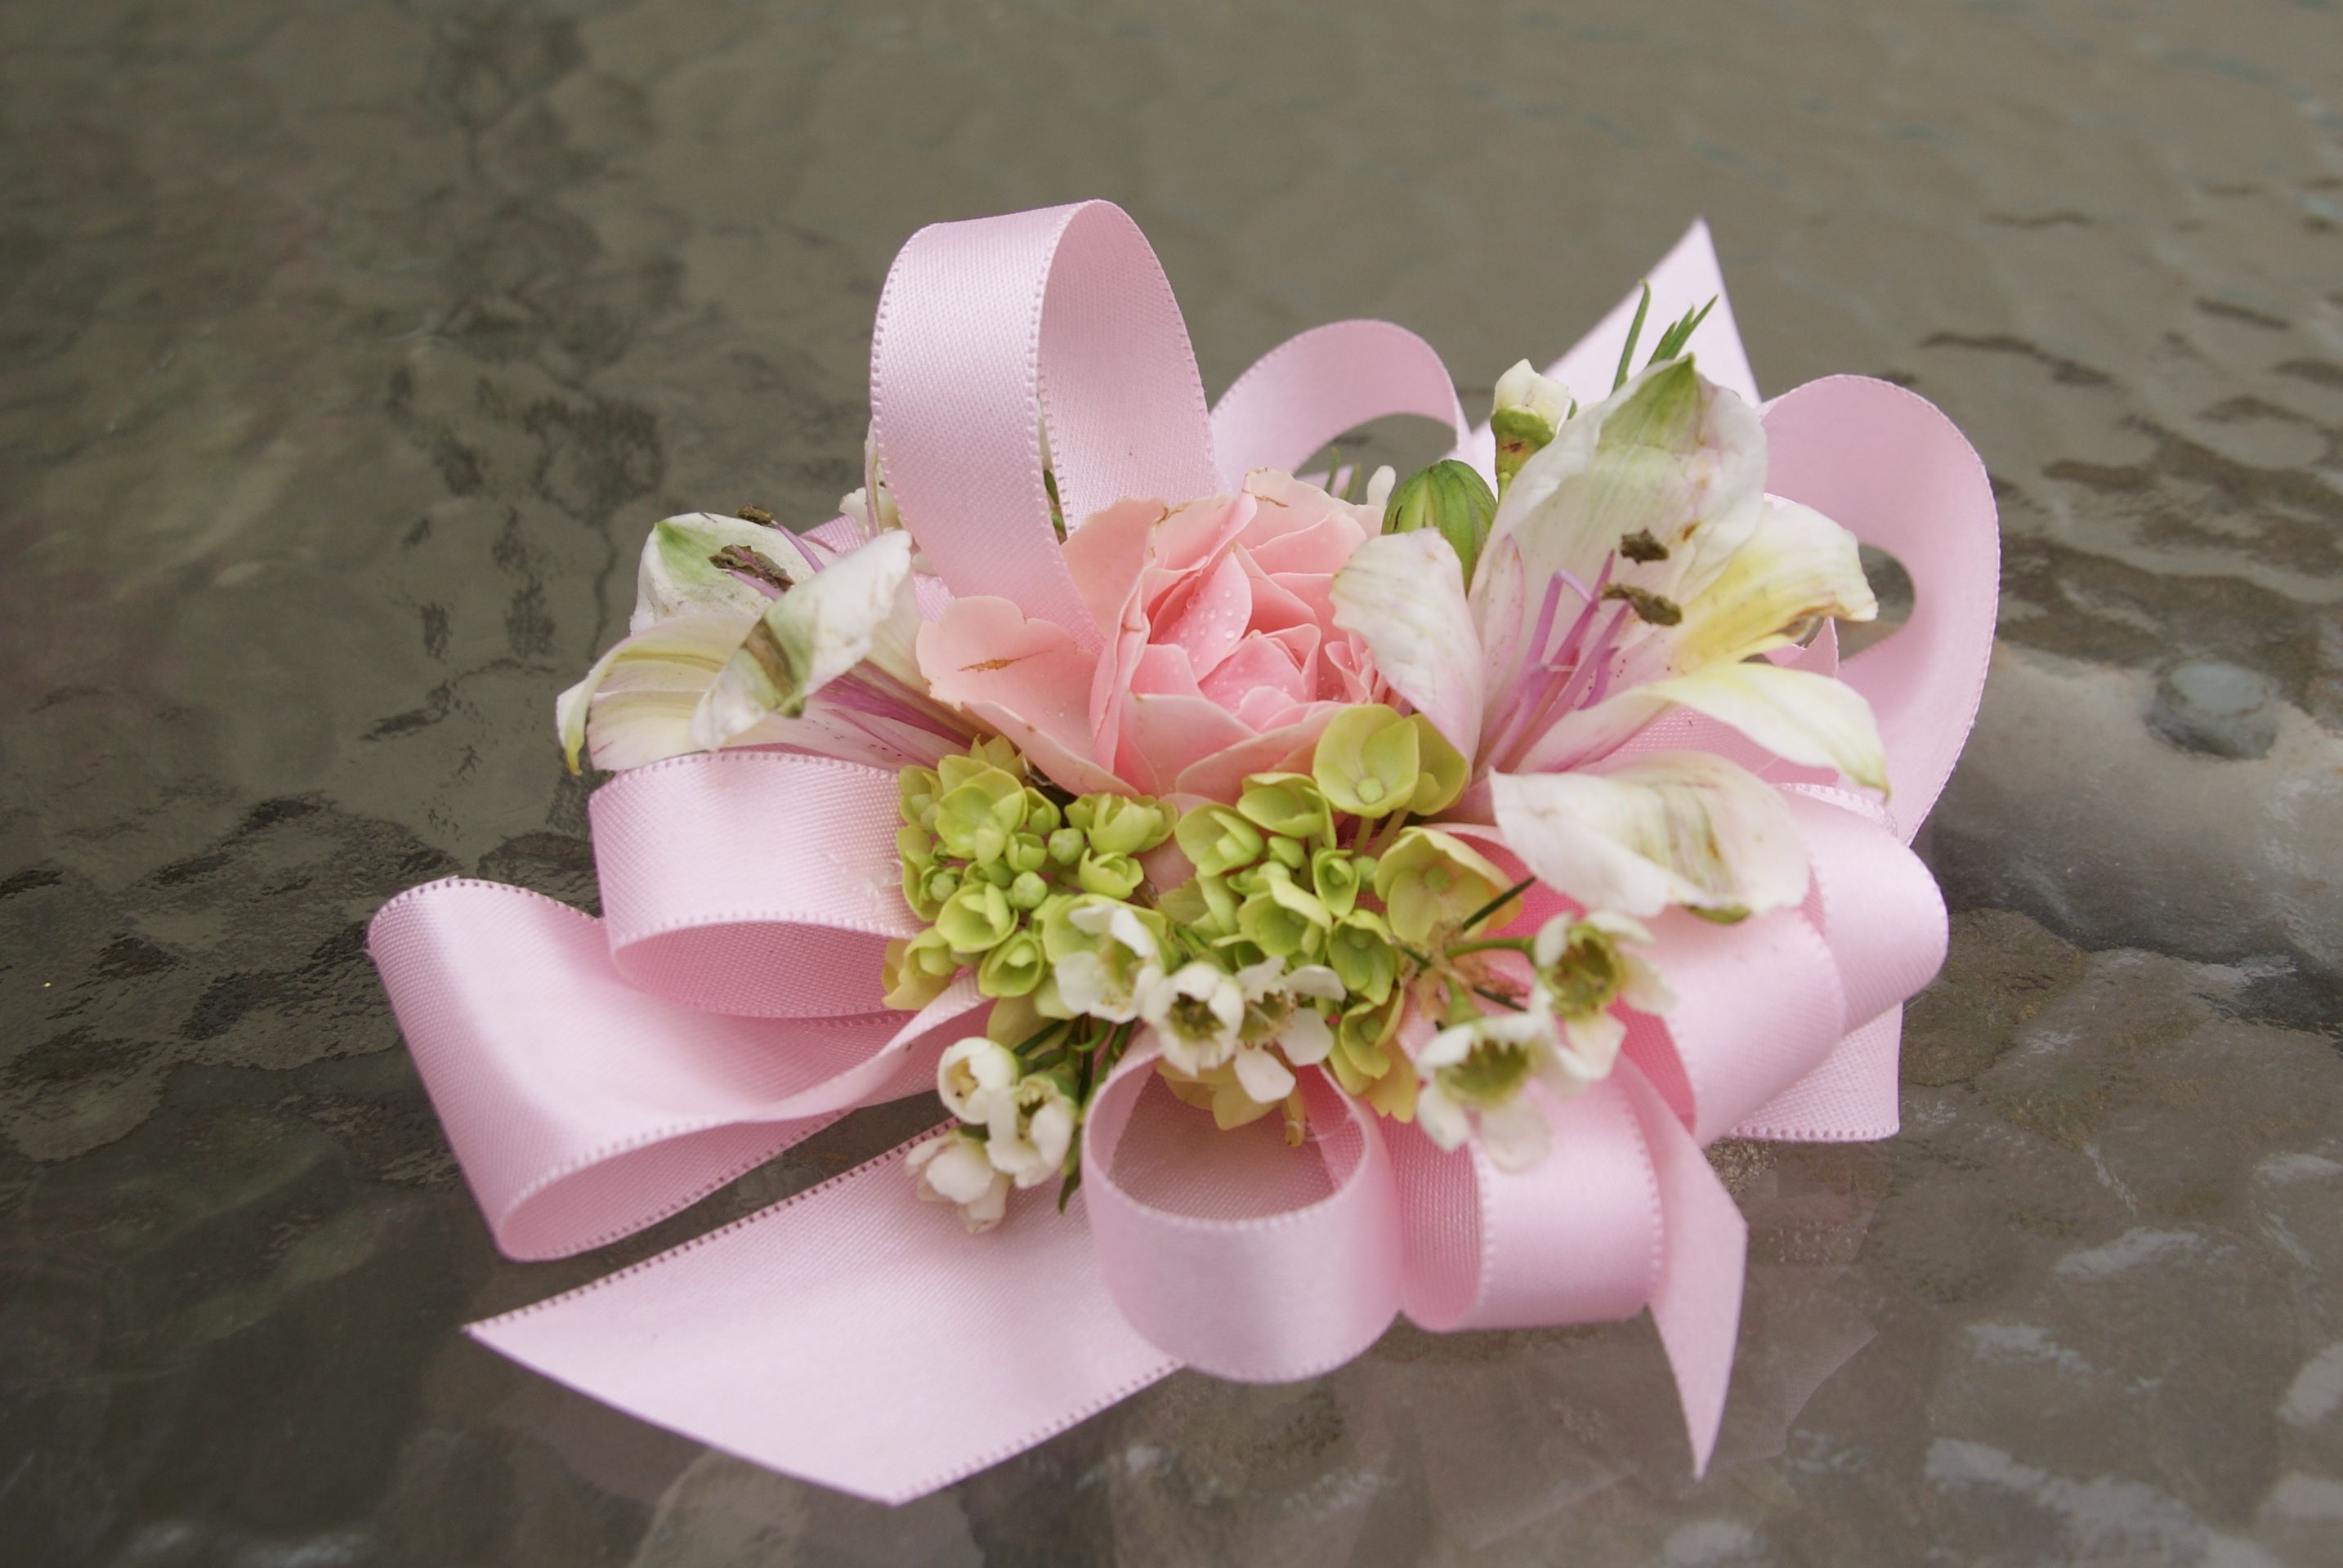 Make This Sweet Wrist Corsage Fits Any Wrist No Special Bracelets